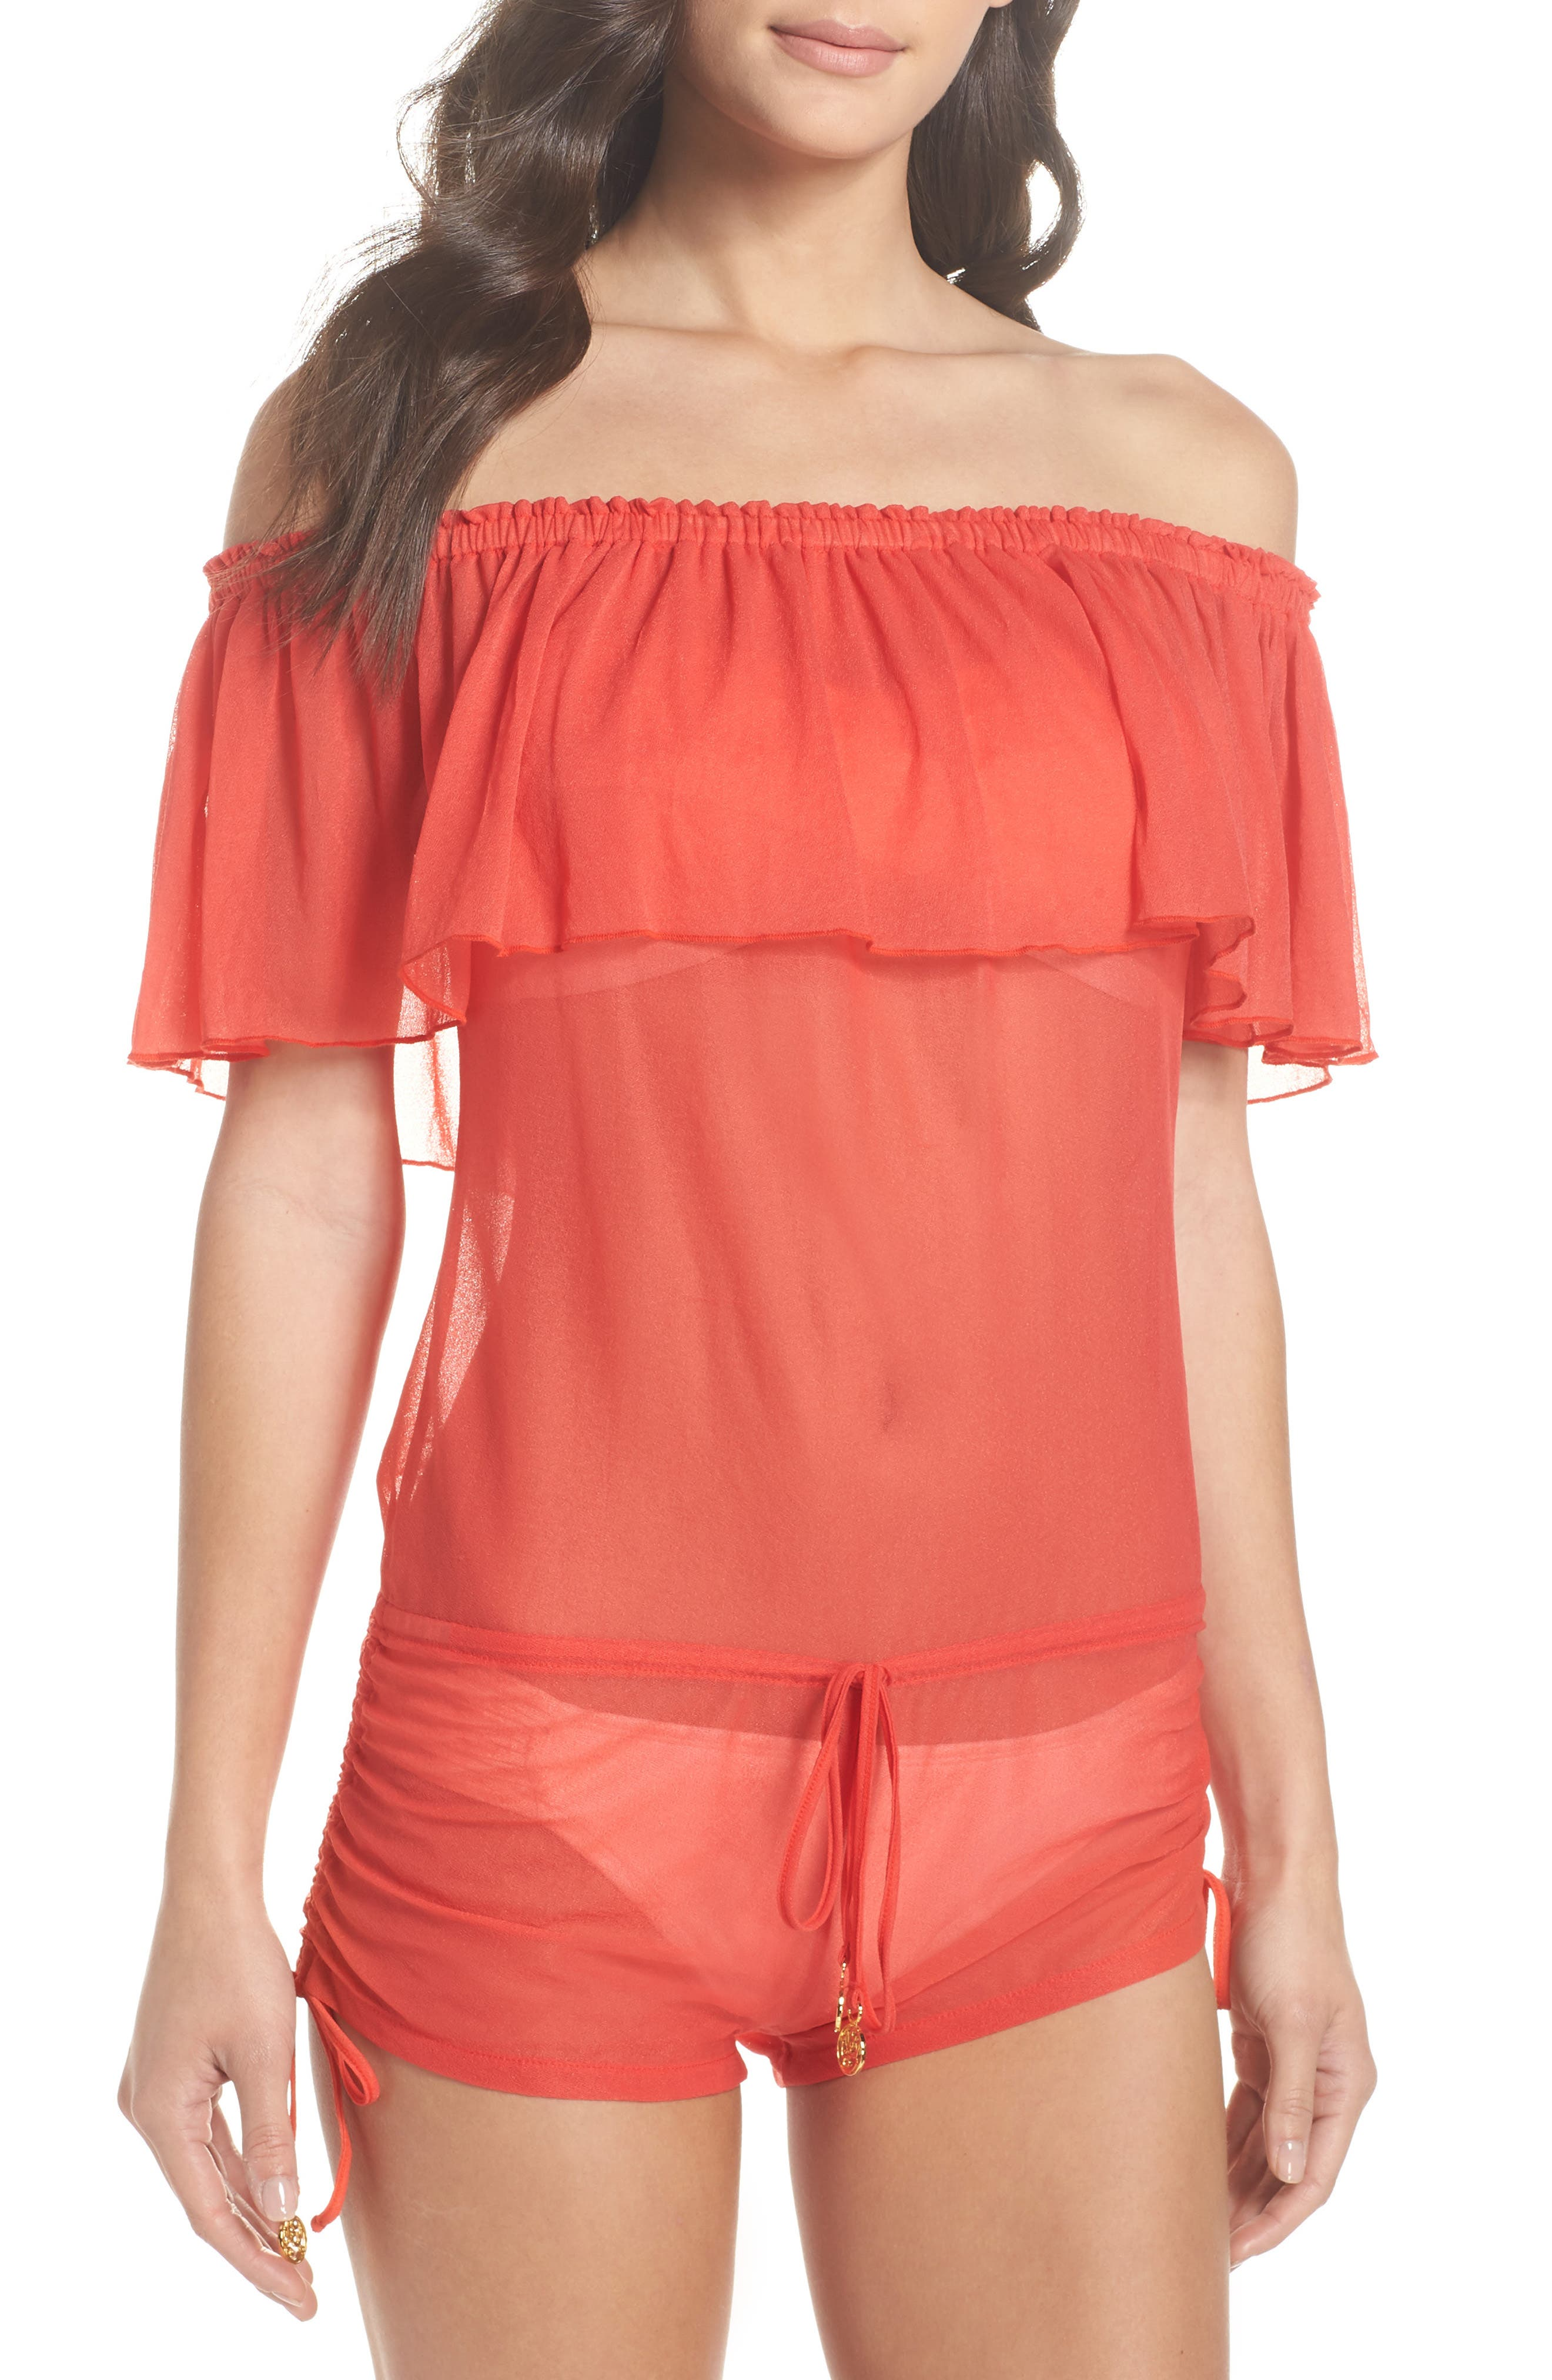 LULI FAMA DRIFTER OFF THE SHOULDER COVER-UP ROMPER